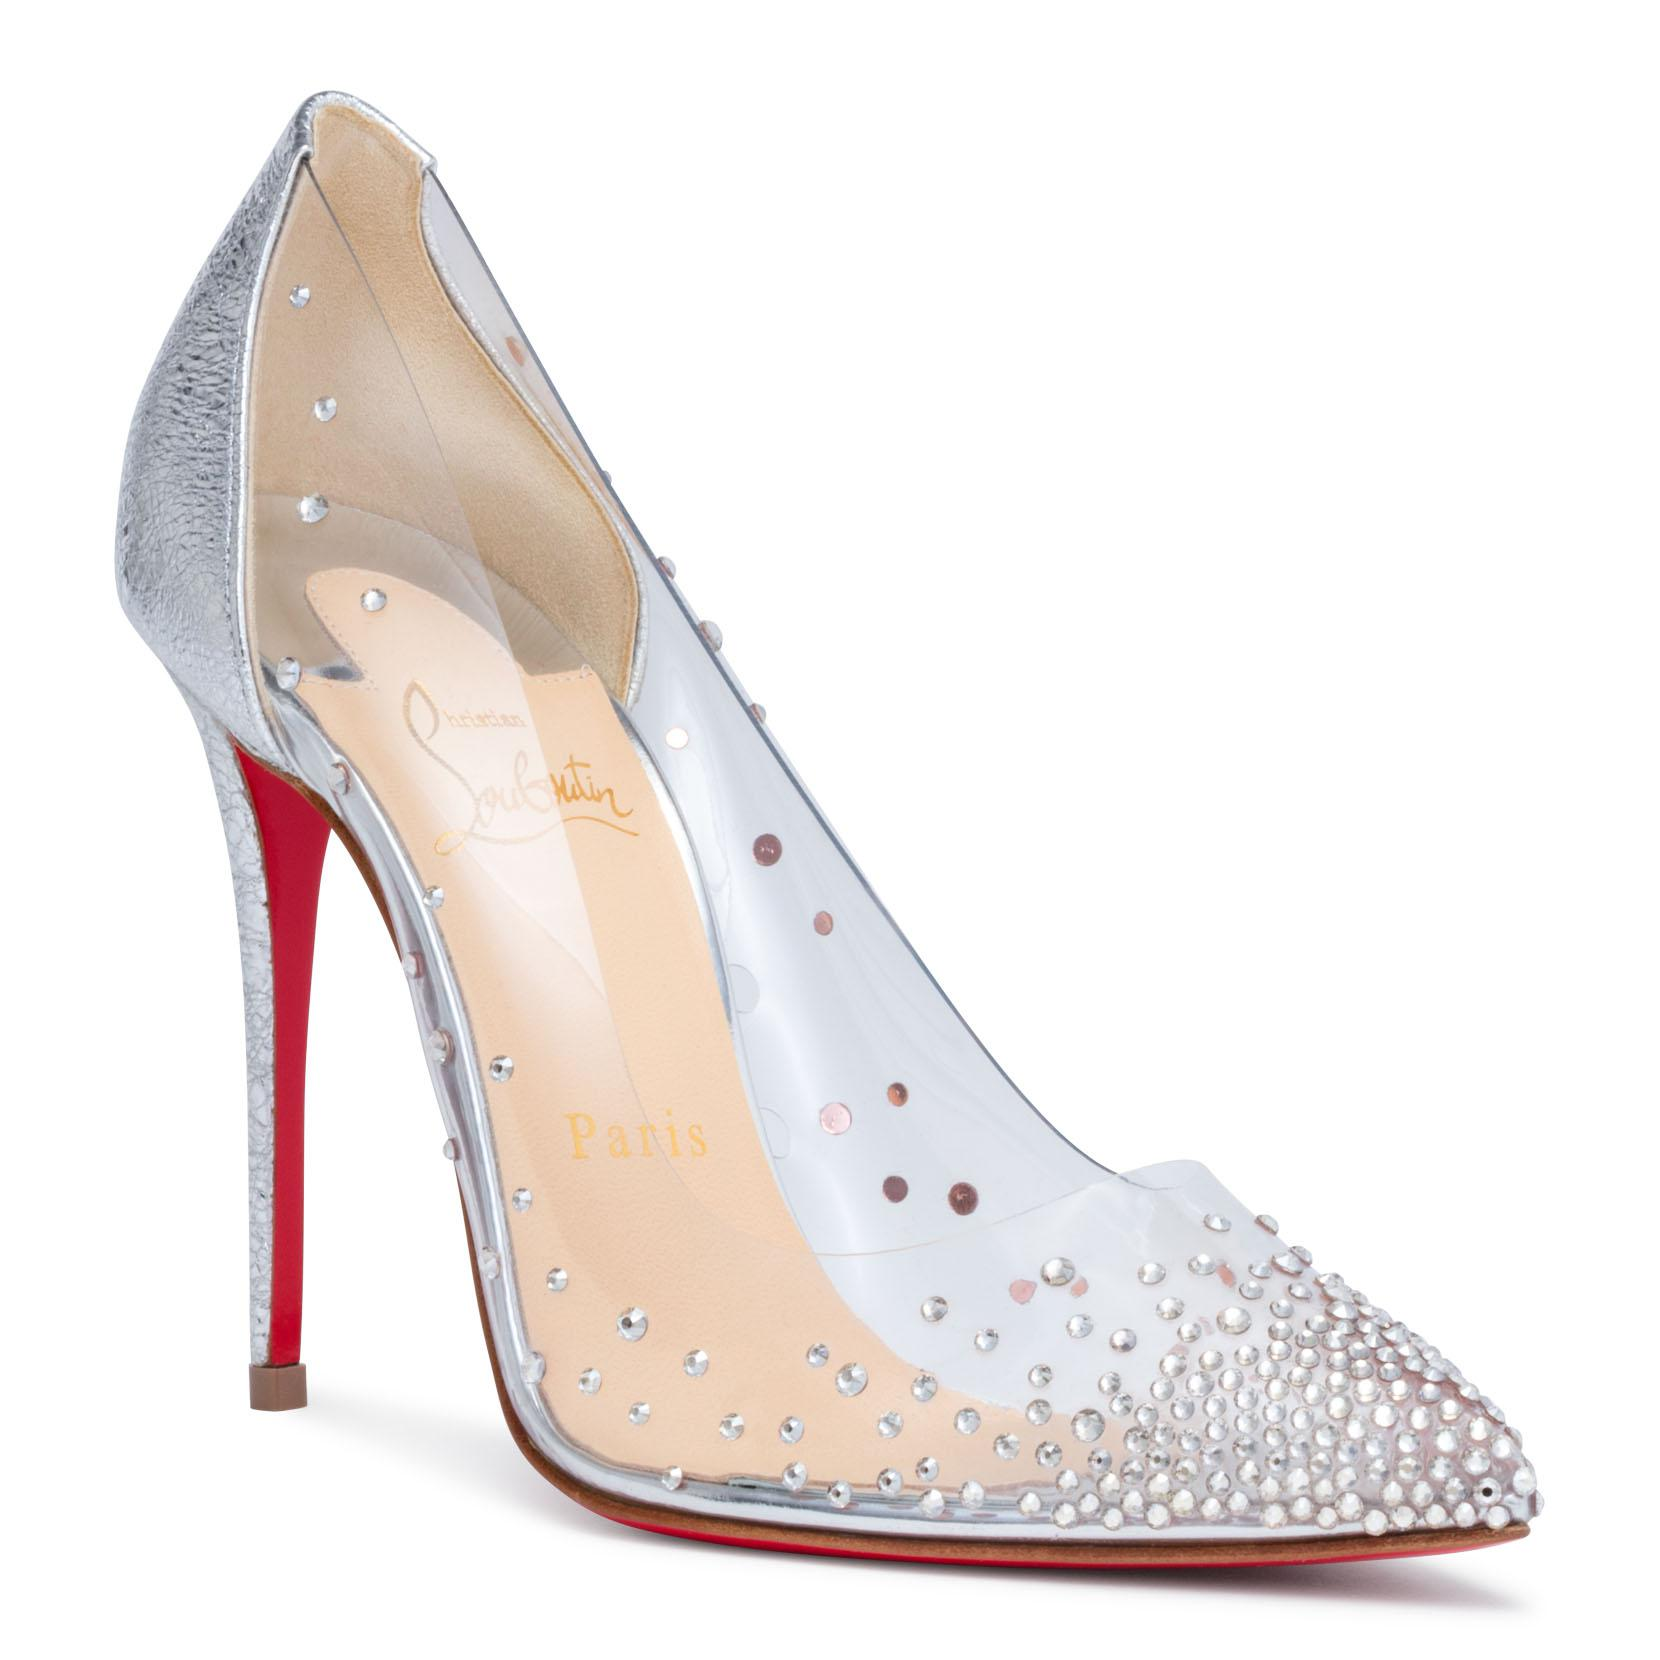 625feada4ad Lyst - Christian Louboutin Degrastrass 100 Silver Patent Pumps in ...